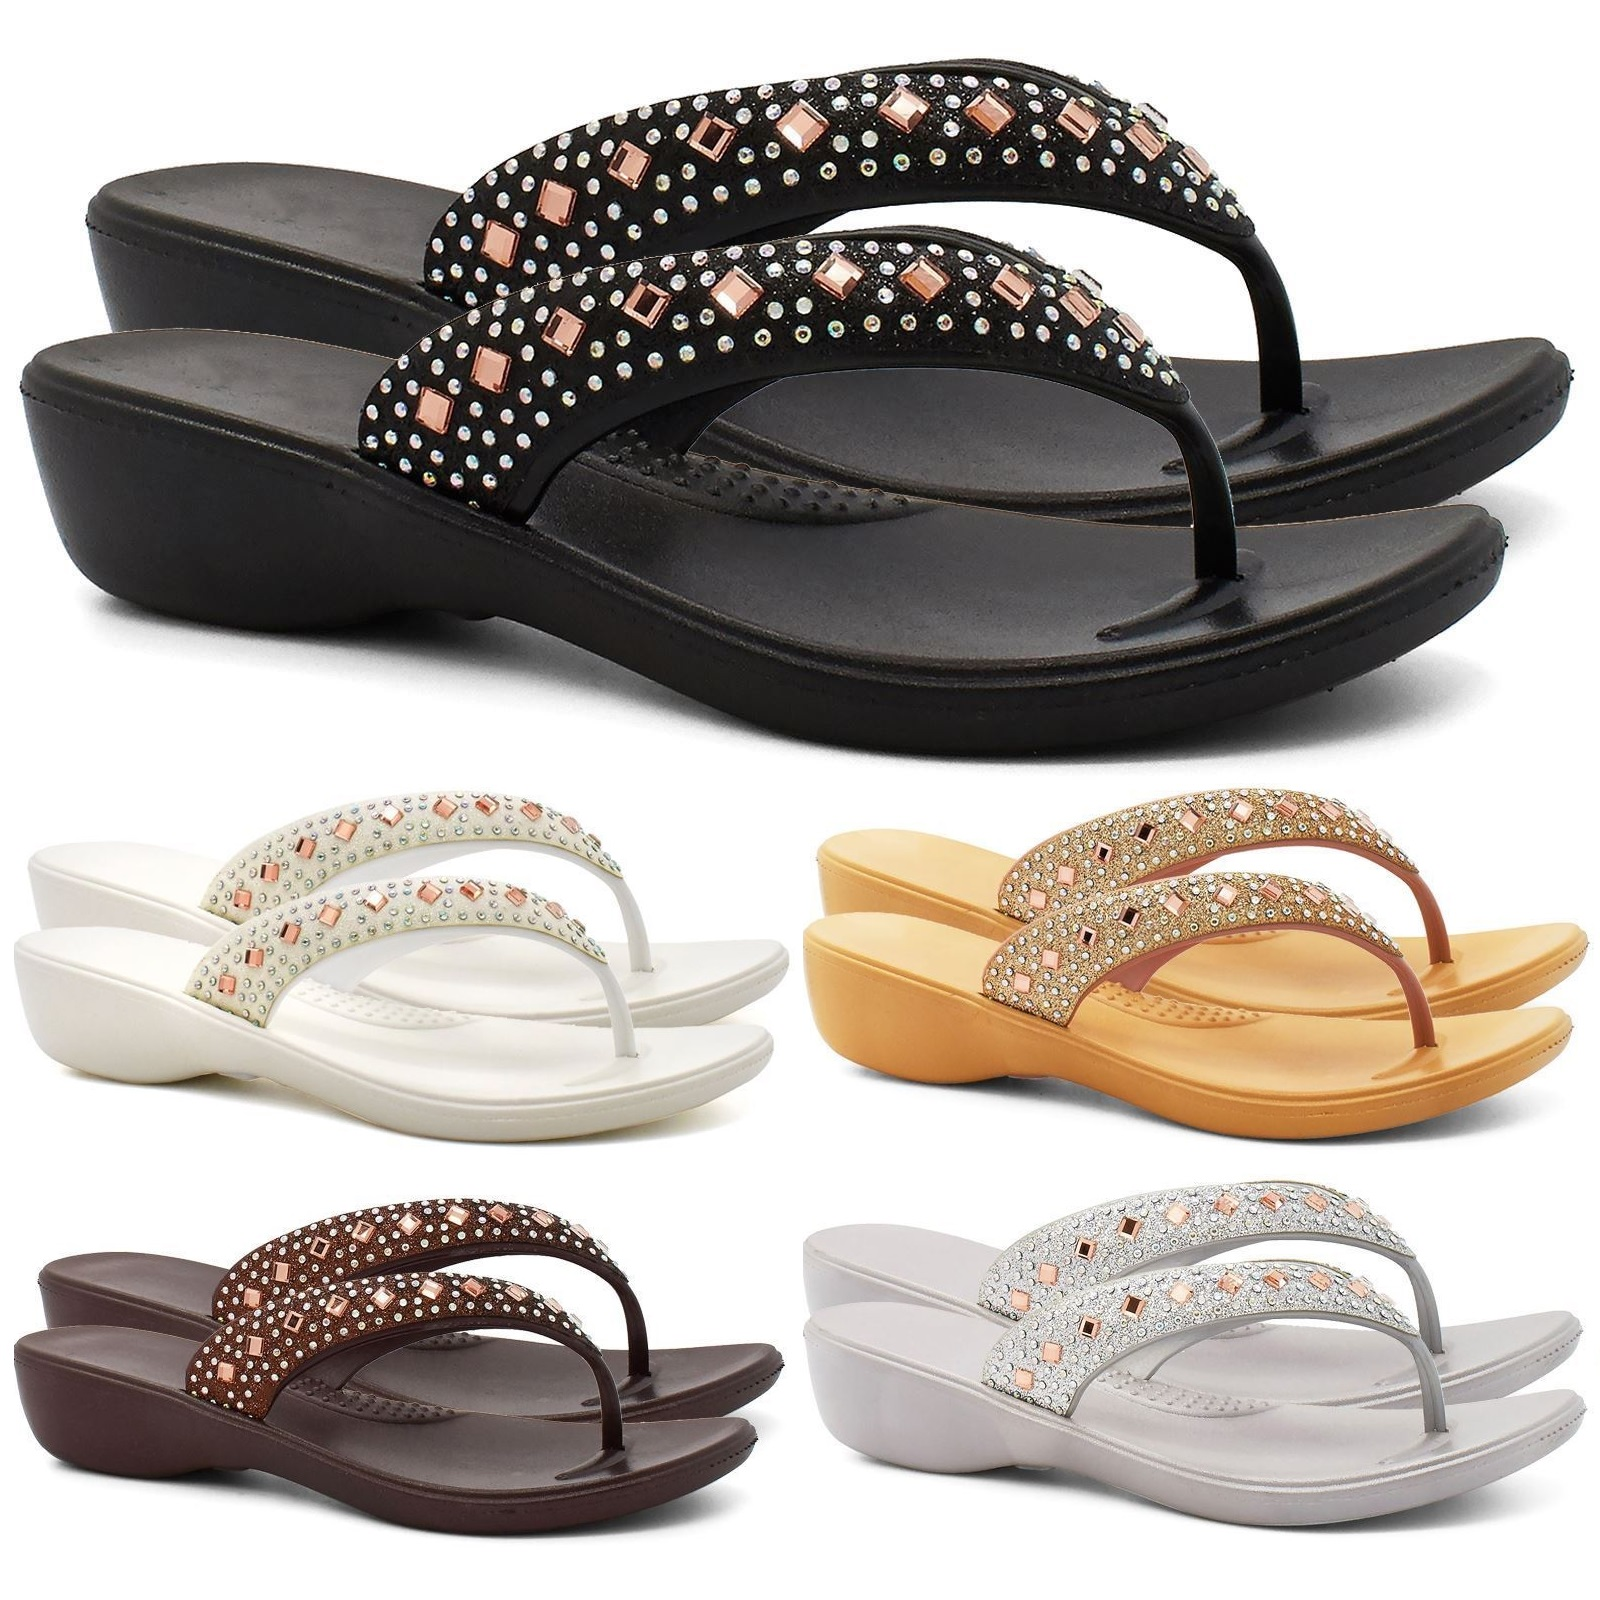 01f43bba55db Sentinel LADIES WOMENS LOW HEEL WEDGE SUMMER DIAMANTE FLIP FLOP TOE POST SANDALS  SHOES SZ